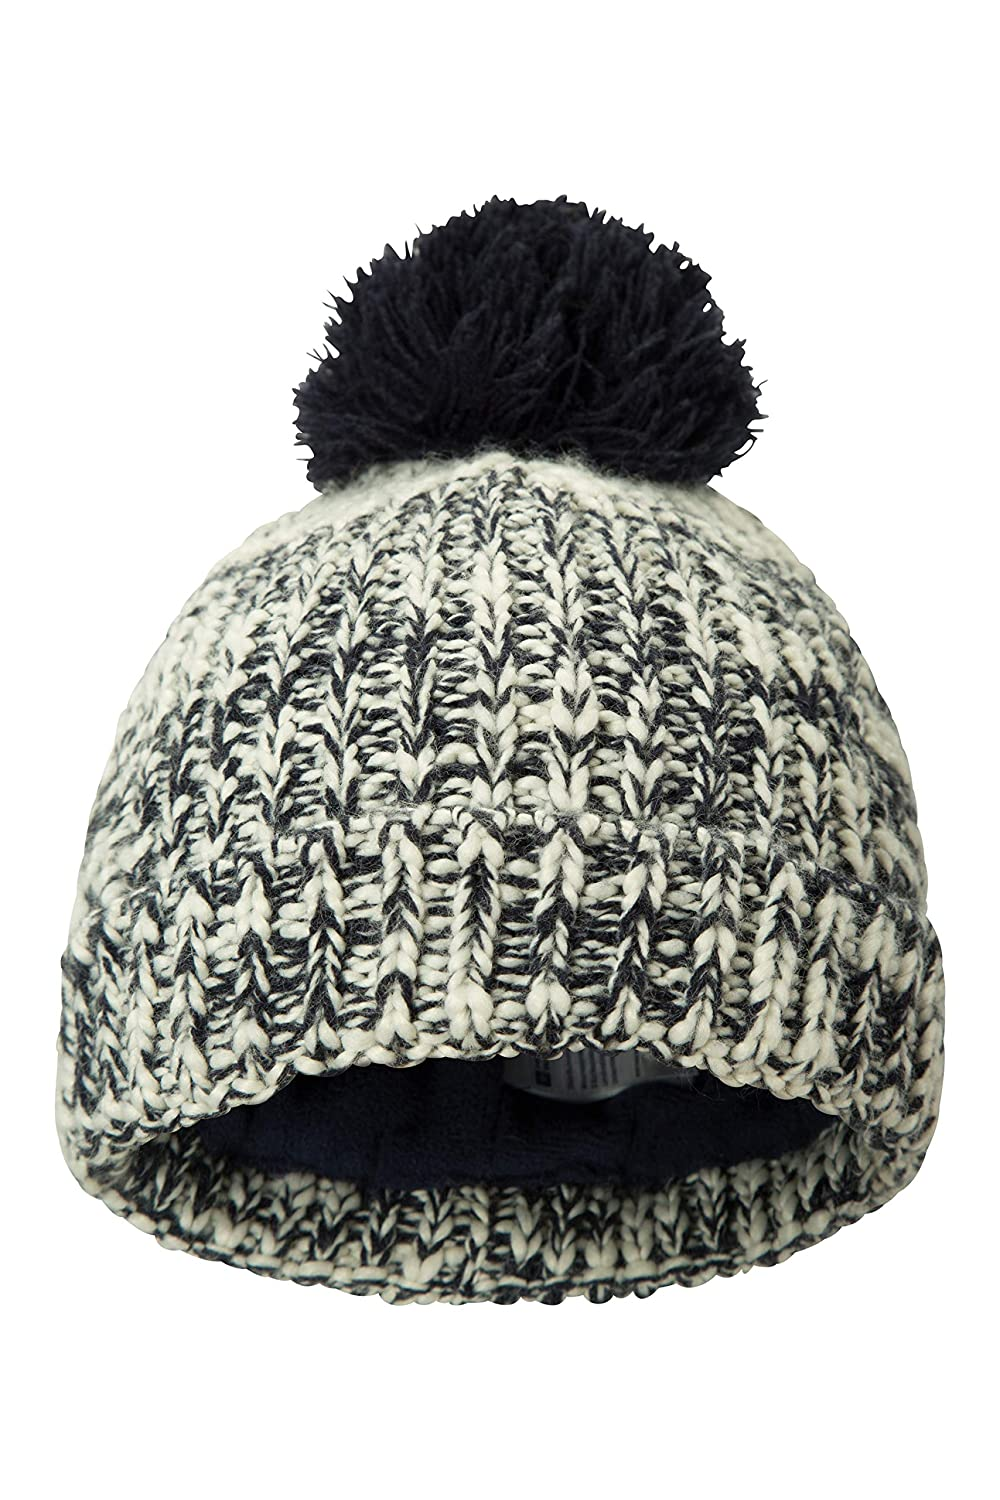 Mountain Warehouse Twisted Knitted Kids Beanie Warm Winter Hat